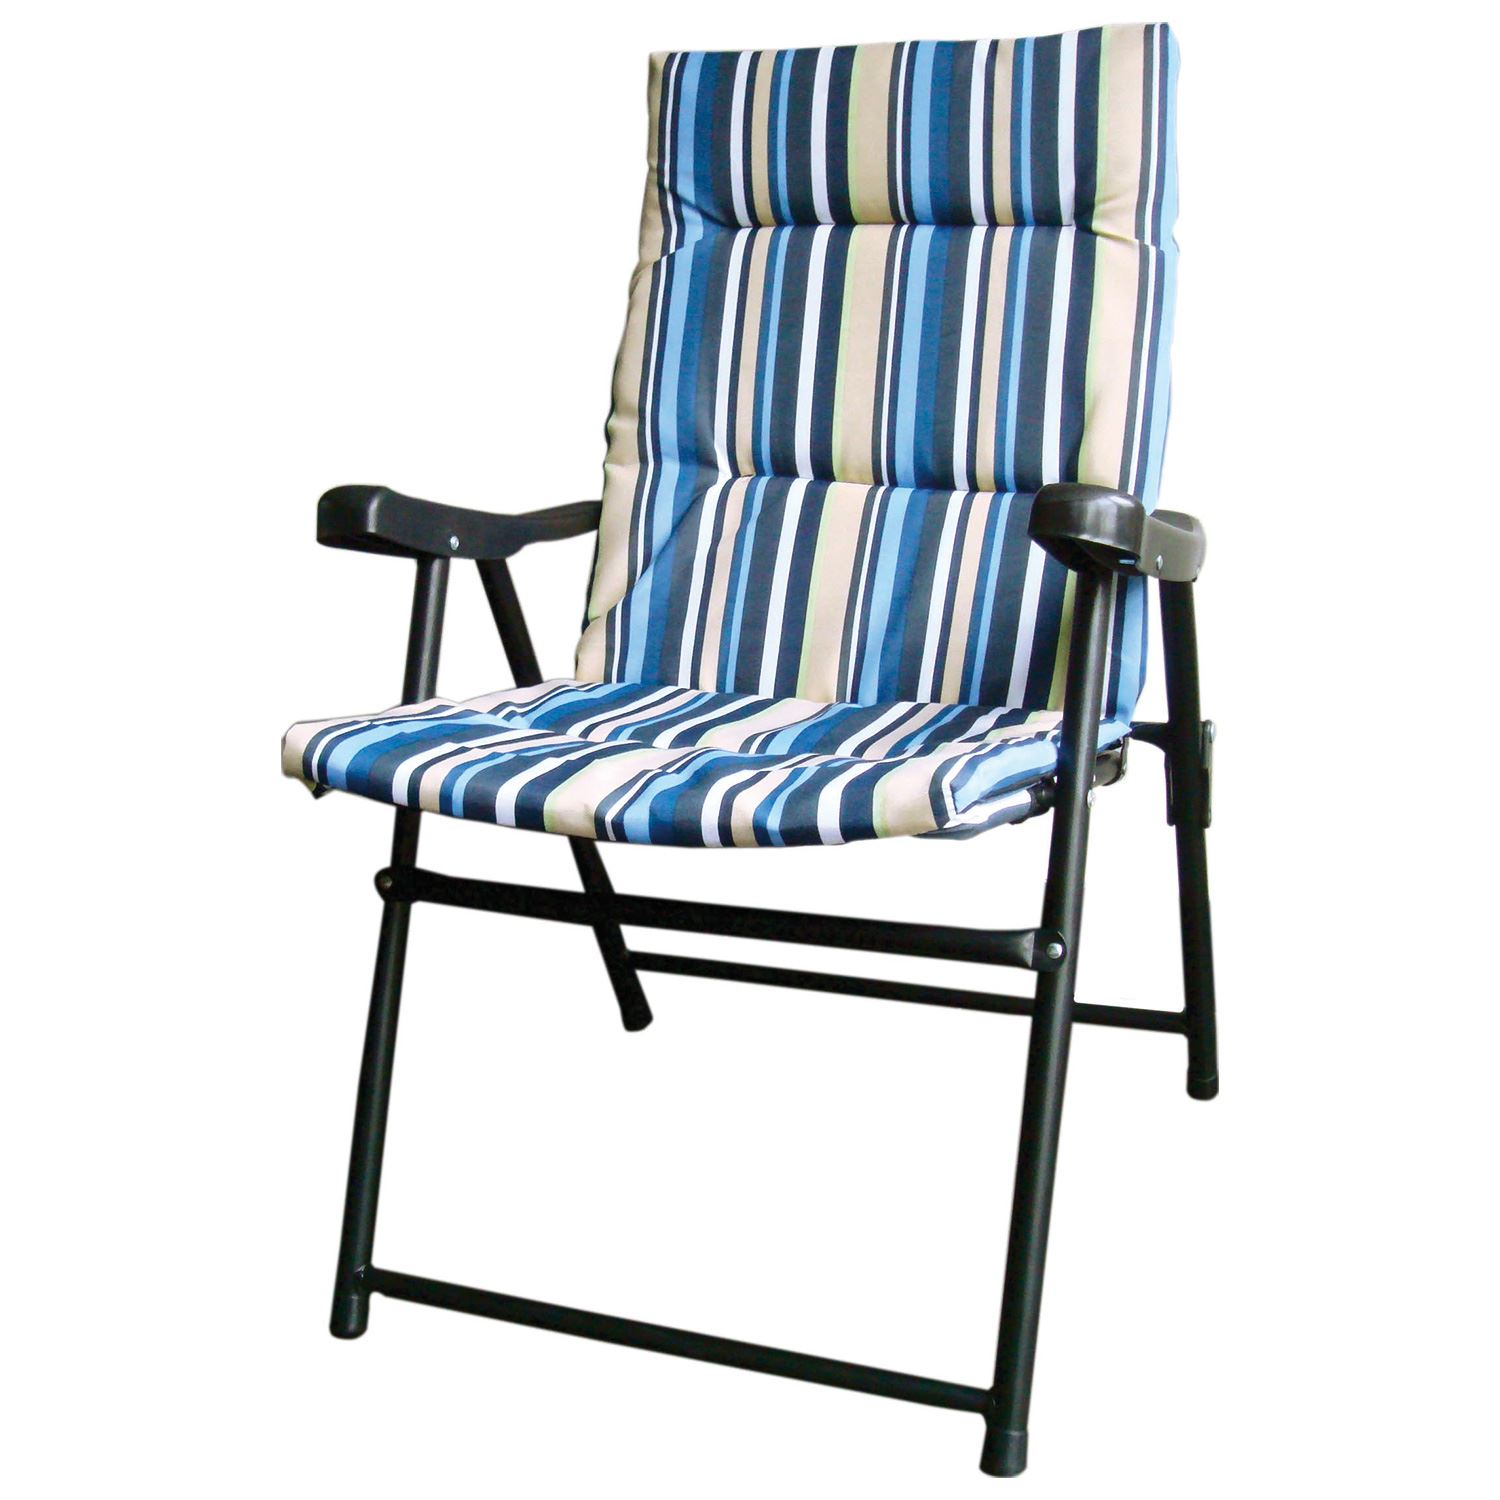 Outdoor Folding Chairs New Padded Folding Outdoor Garden Camping Picnic Chair